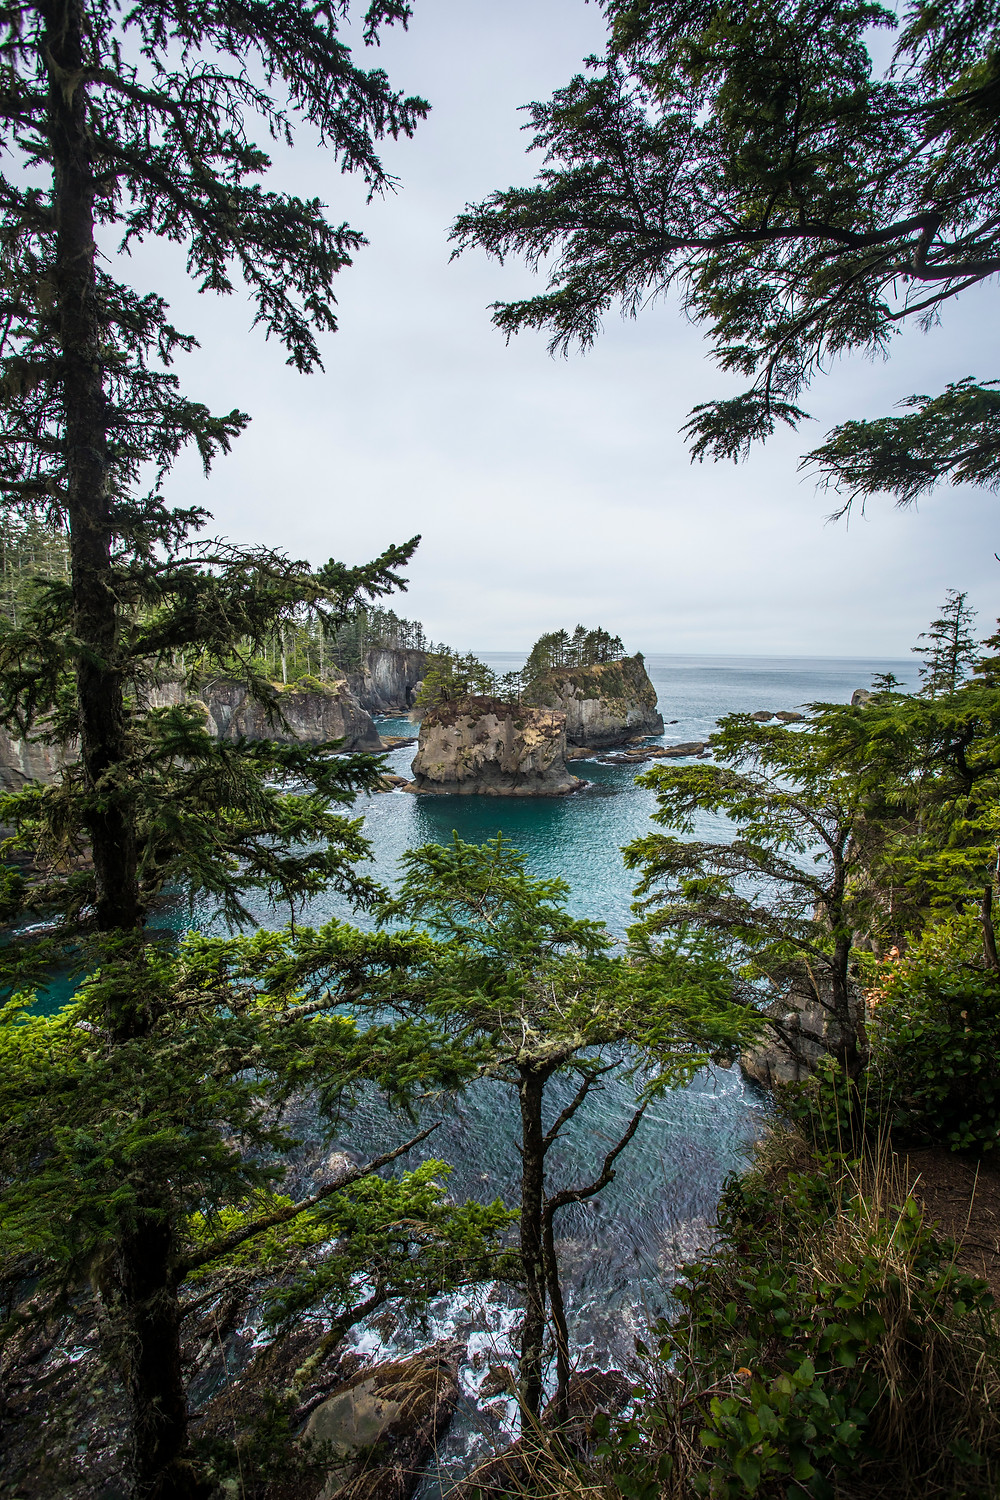 View from Cape Flattery in northwest Washington during our roadtrip to the PNW.